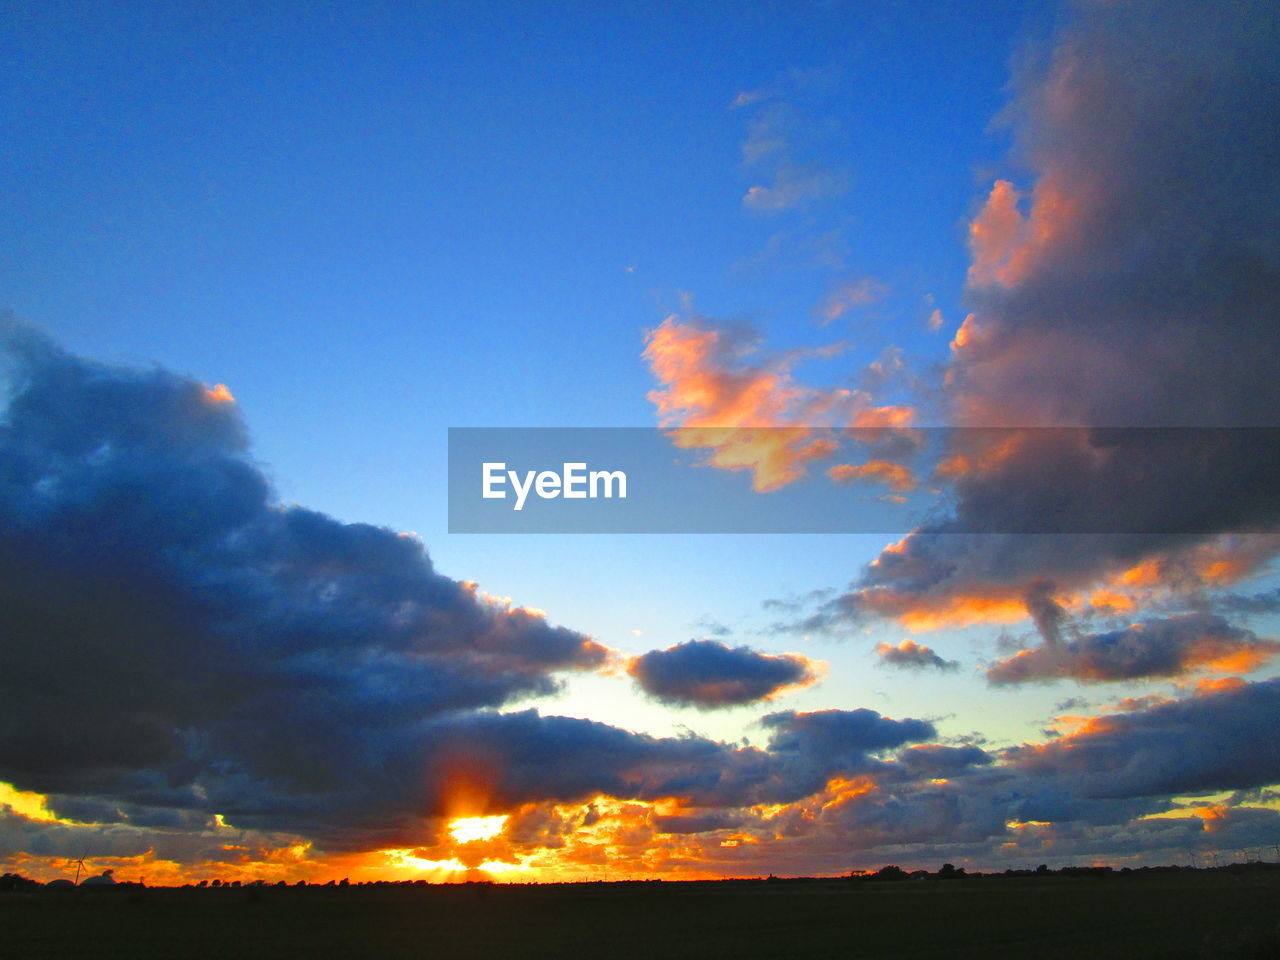 sky, cloud - sky, beauty in nature, scenics - nature, sunset, orange color, tranquility, tranquil scene, no people, nature, low angle view, outdoors, sunlight, idyllic, silhouette, environment, non-urban scene, blue, dramatic sky, majestic